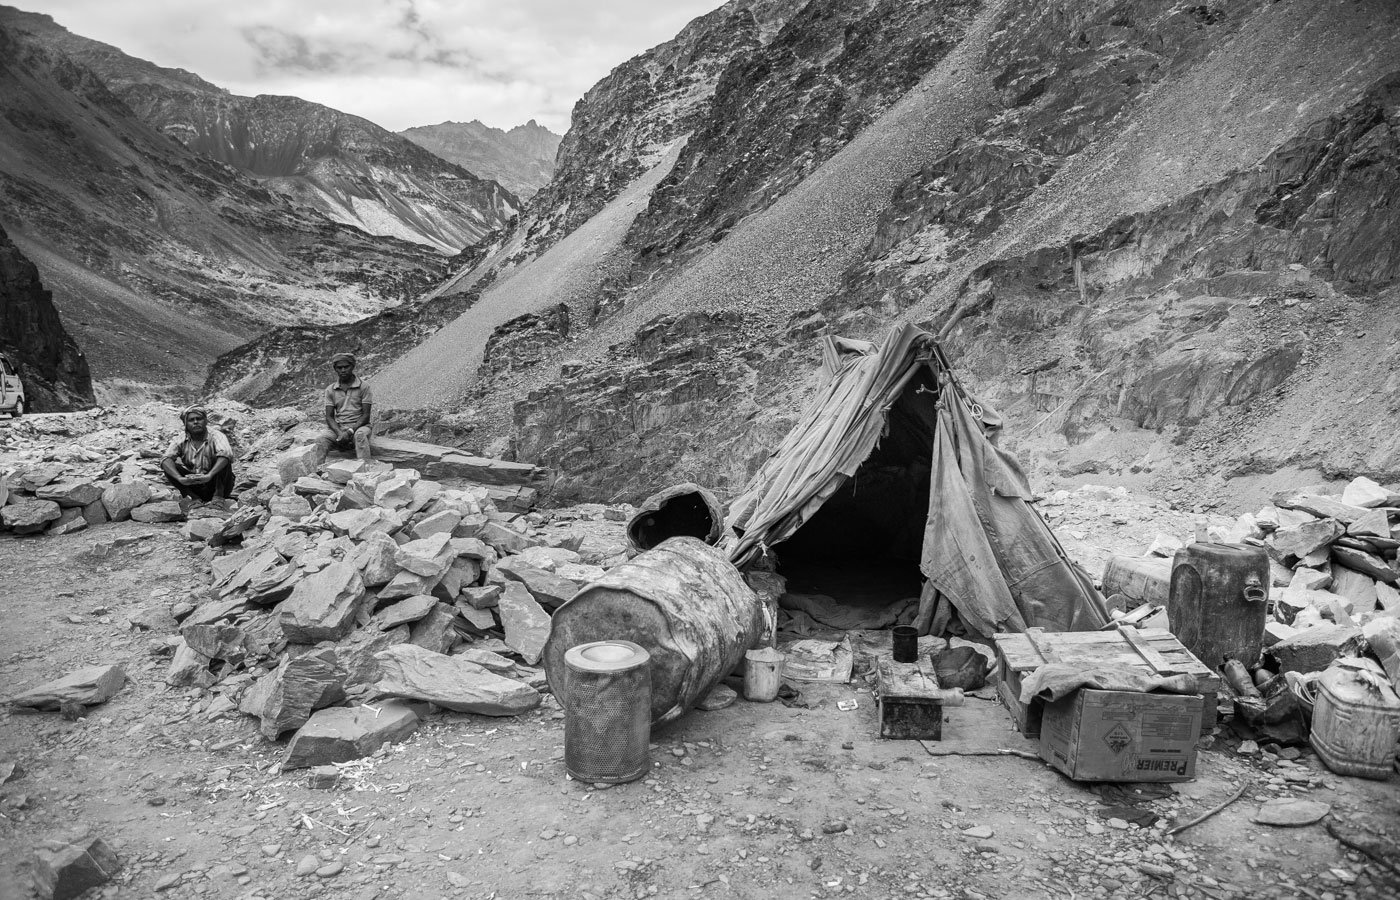 Jiten Murmu (left) from Bihar, with a co-worker, waiting outside their tent near Chilling village for lunch to arrive from another camp site. The canvas tents barely protect the workers during the cold nights. They camp by the roadside and follow the road works as they advance.